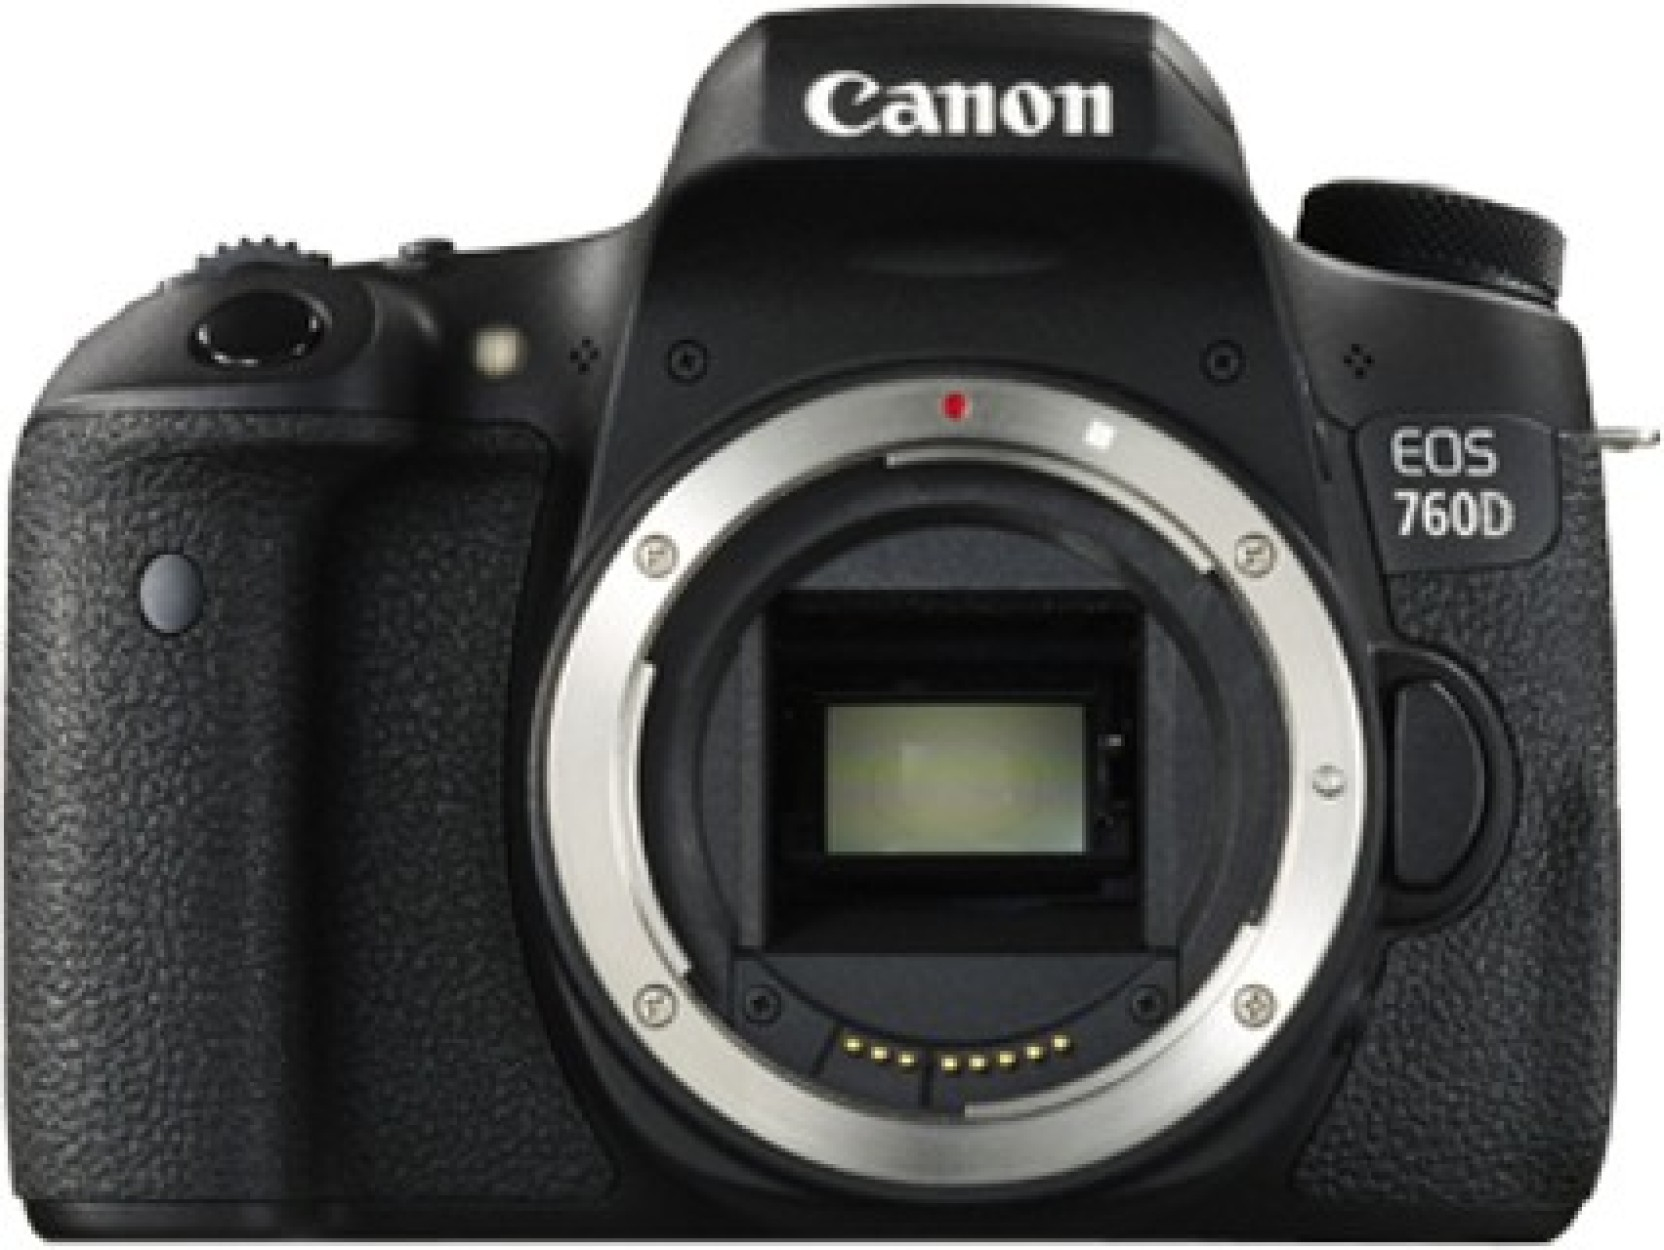 Canon Eos 760d Dslr Camera Body Only Price In India Buy 750d Home